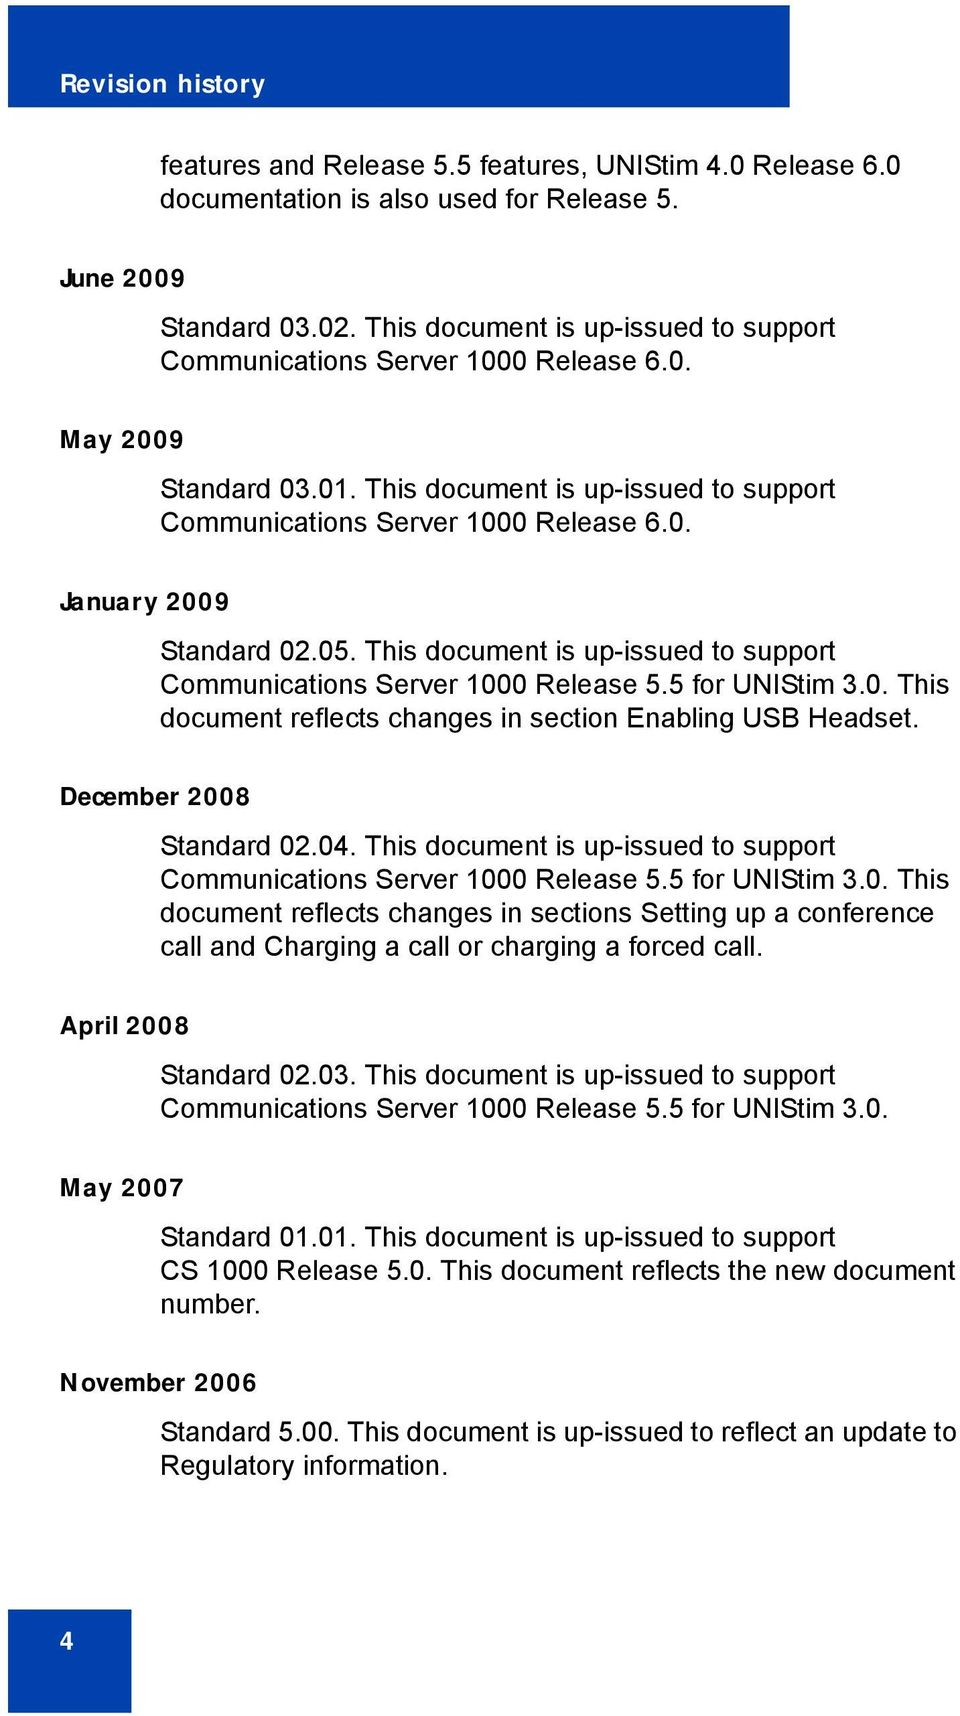 05. This document is up-issued to support Communications Server 1000 Release 5.5 for UNIStim 3.0. This document reflects changes in section Enabling USB Headset. December 2008 Standard 02.04.